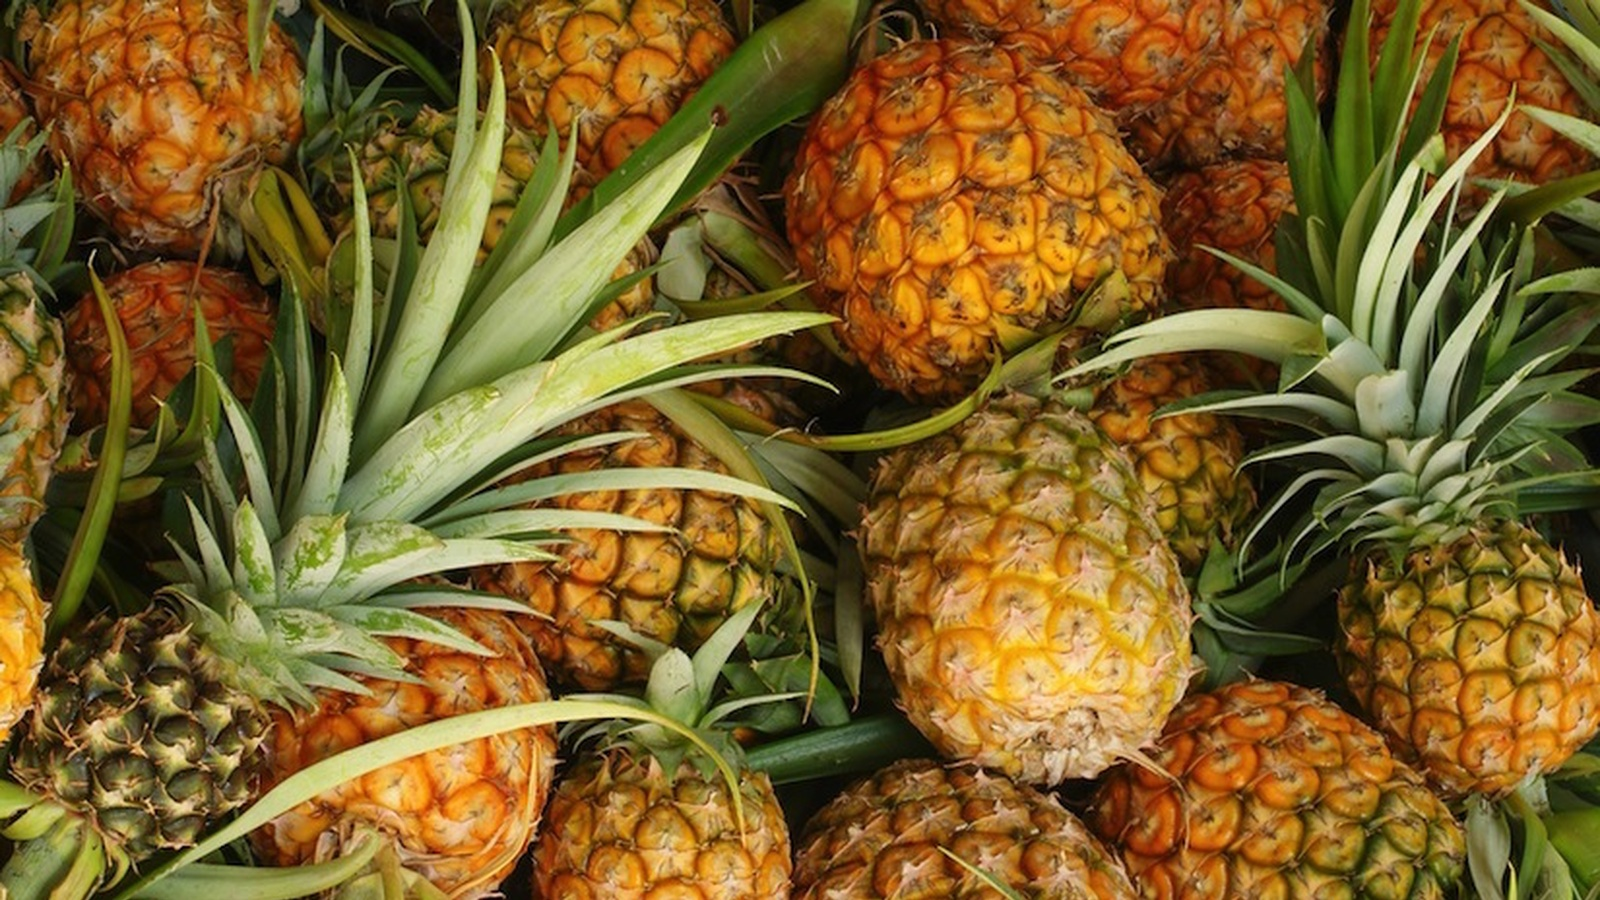 16 Powerful Reasons to Eat Pineapple